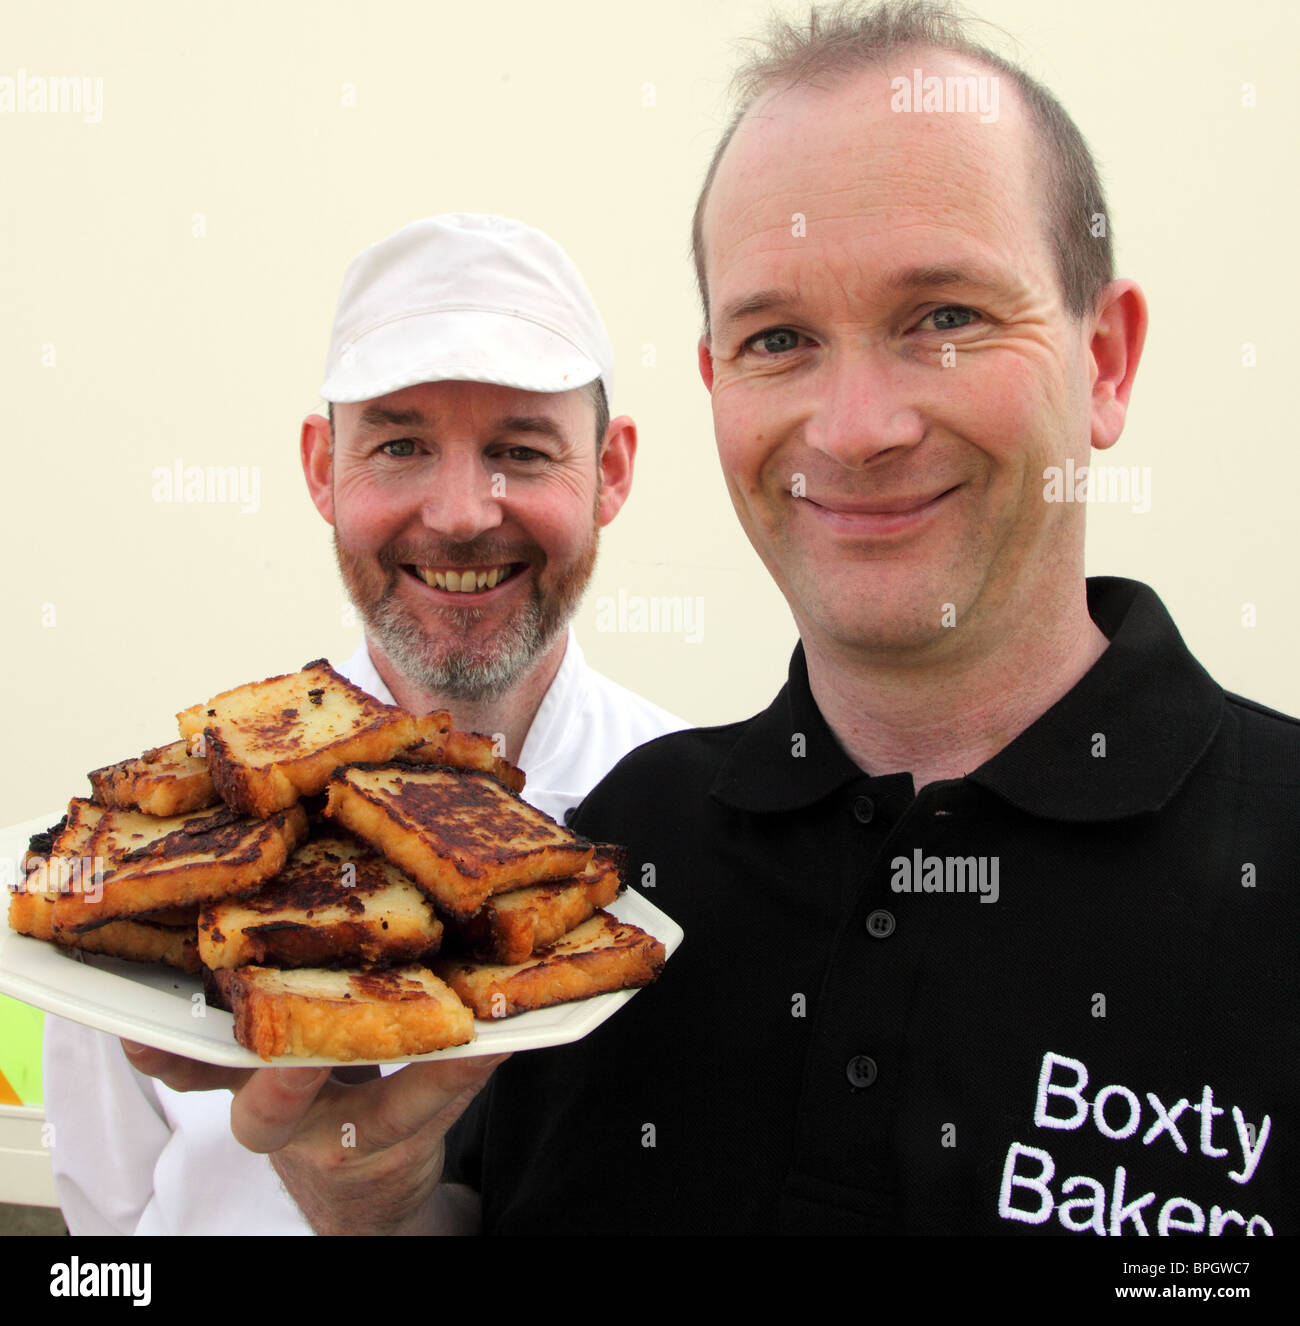 Boxty Bakers, Co. Leitrim, founder Stepher Hennessey and Chef Padraig Gunning - Stock Image